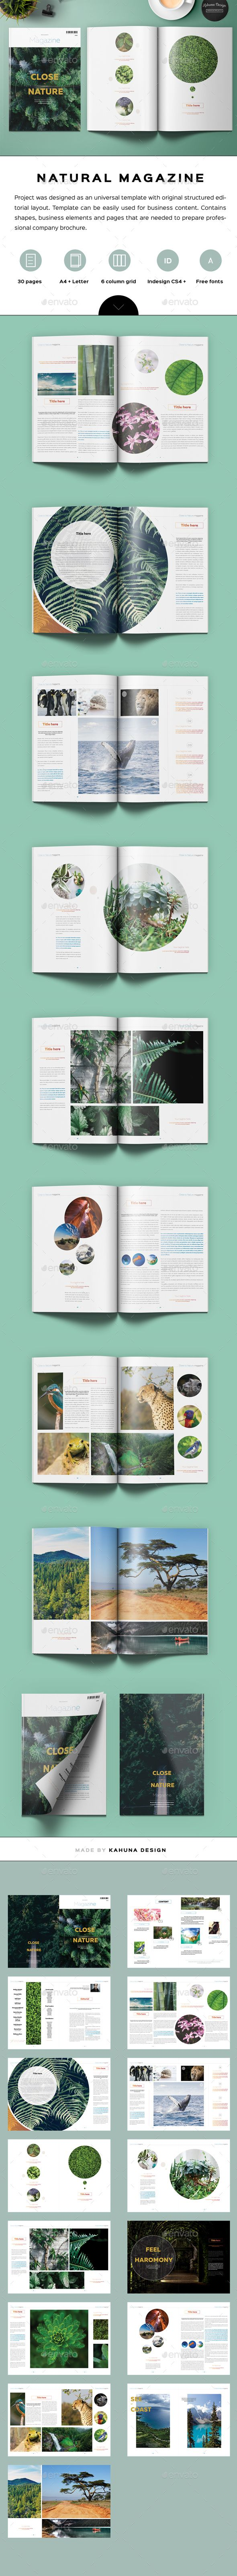 Natural Magazine | Indesign templates, Template and Magazines